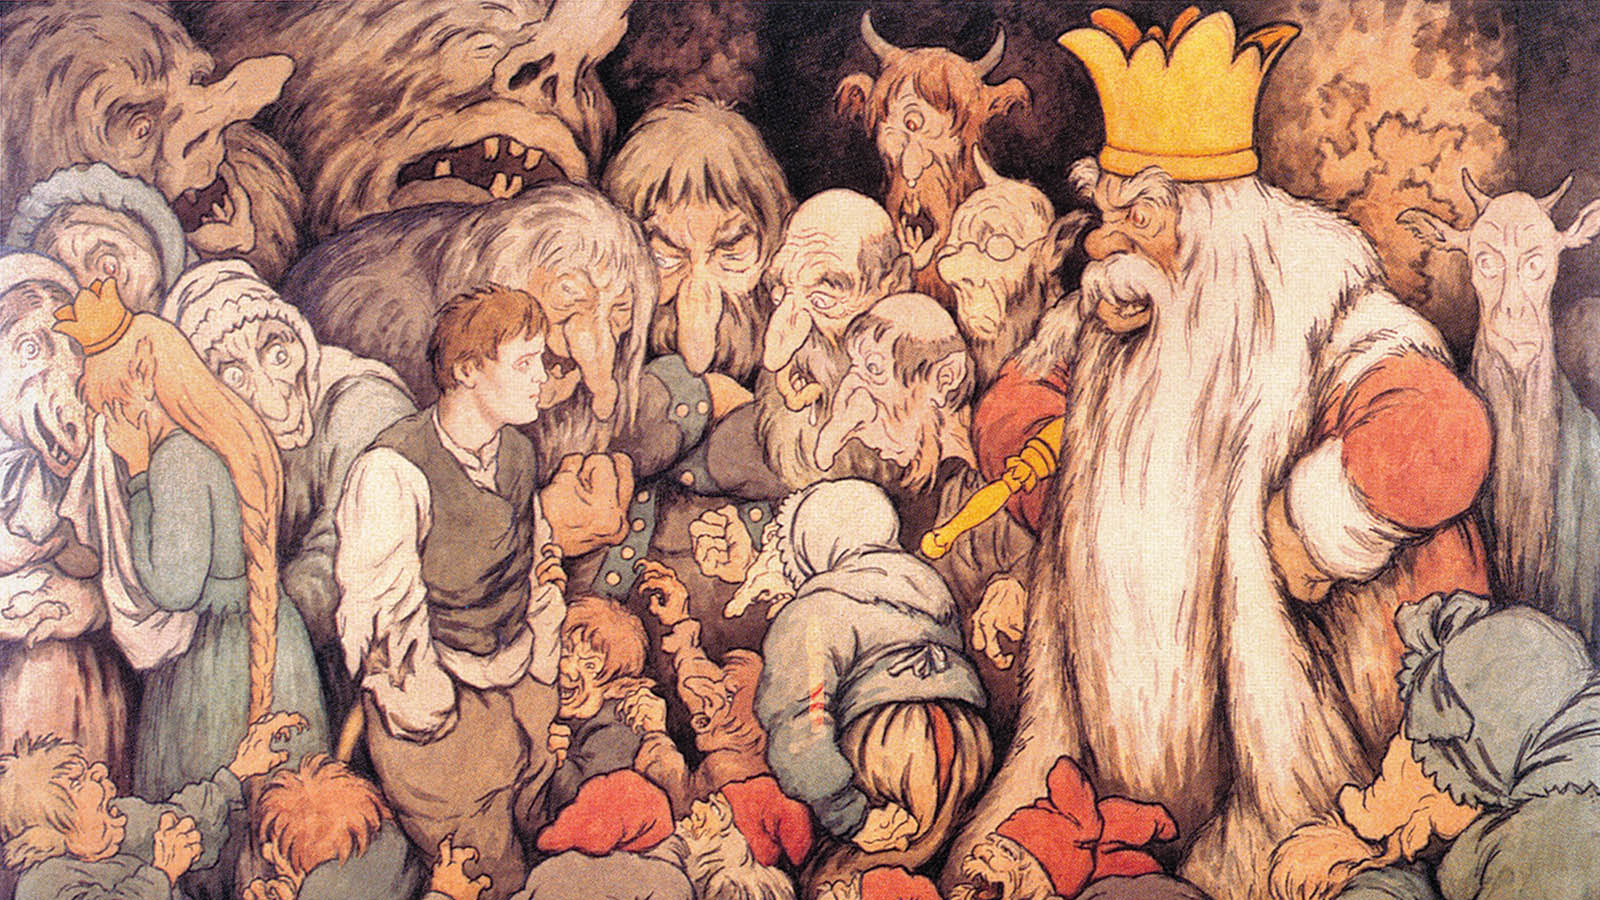 Peer Gynt In The Hall of the Mountain King, by Theodor Kittelsen, 1890